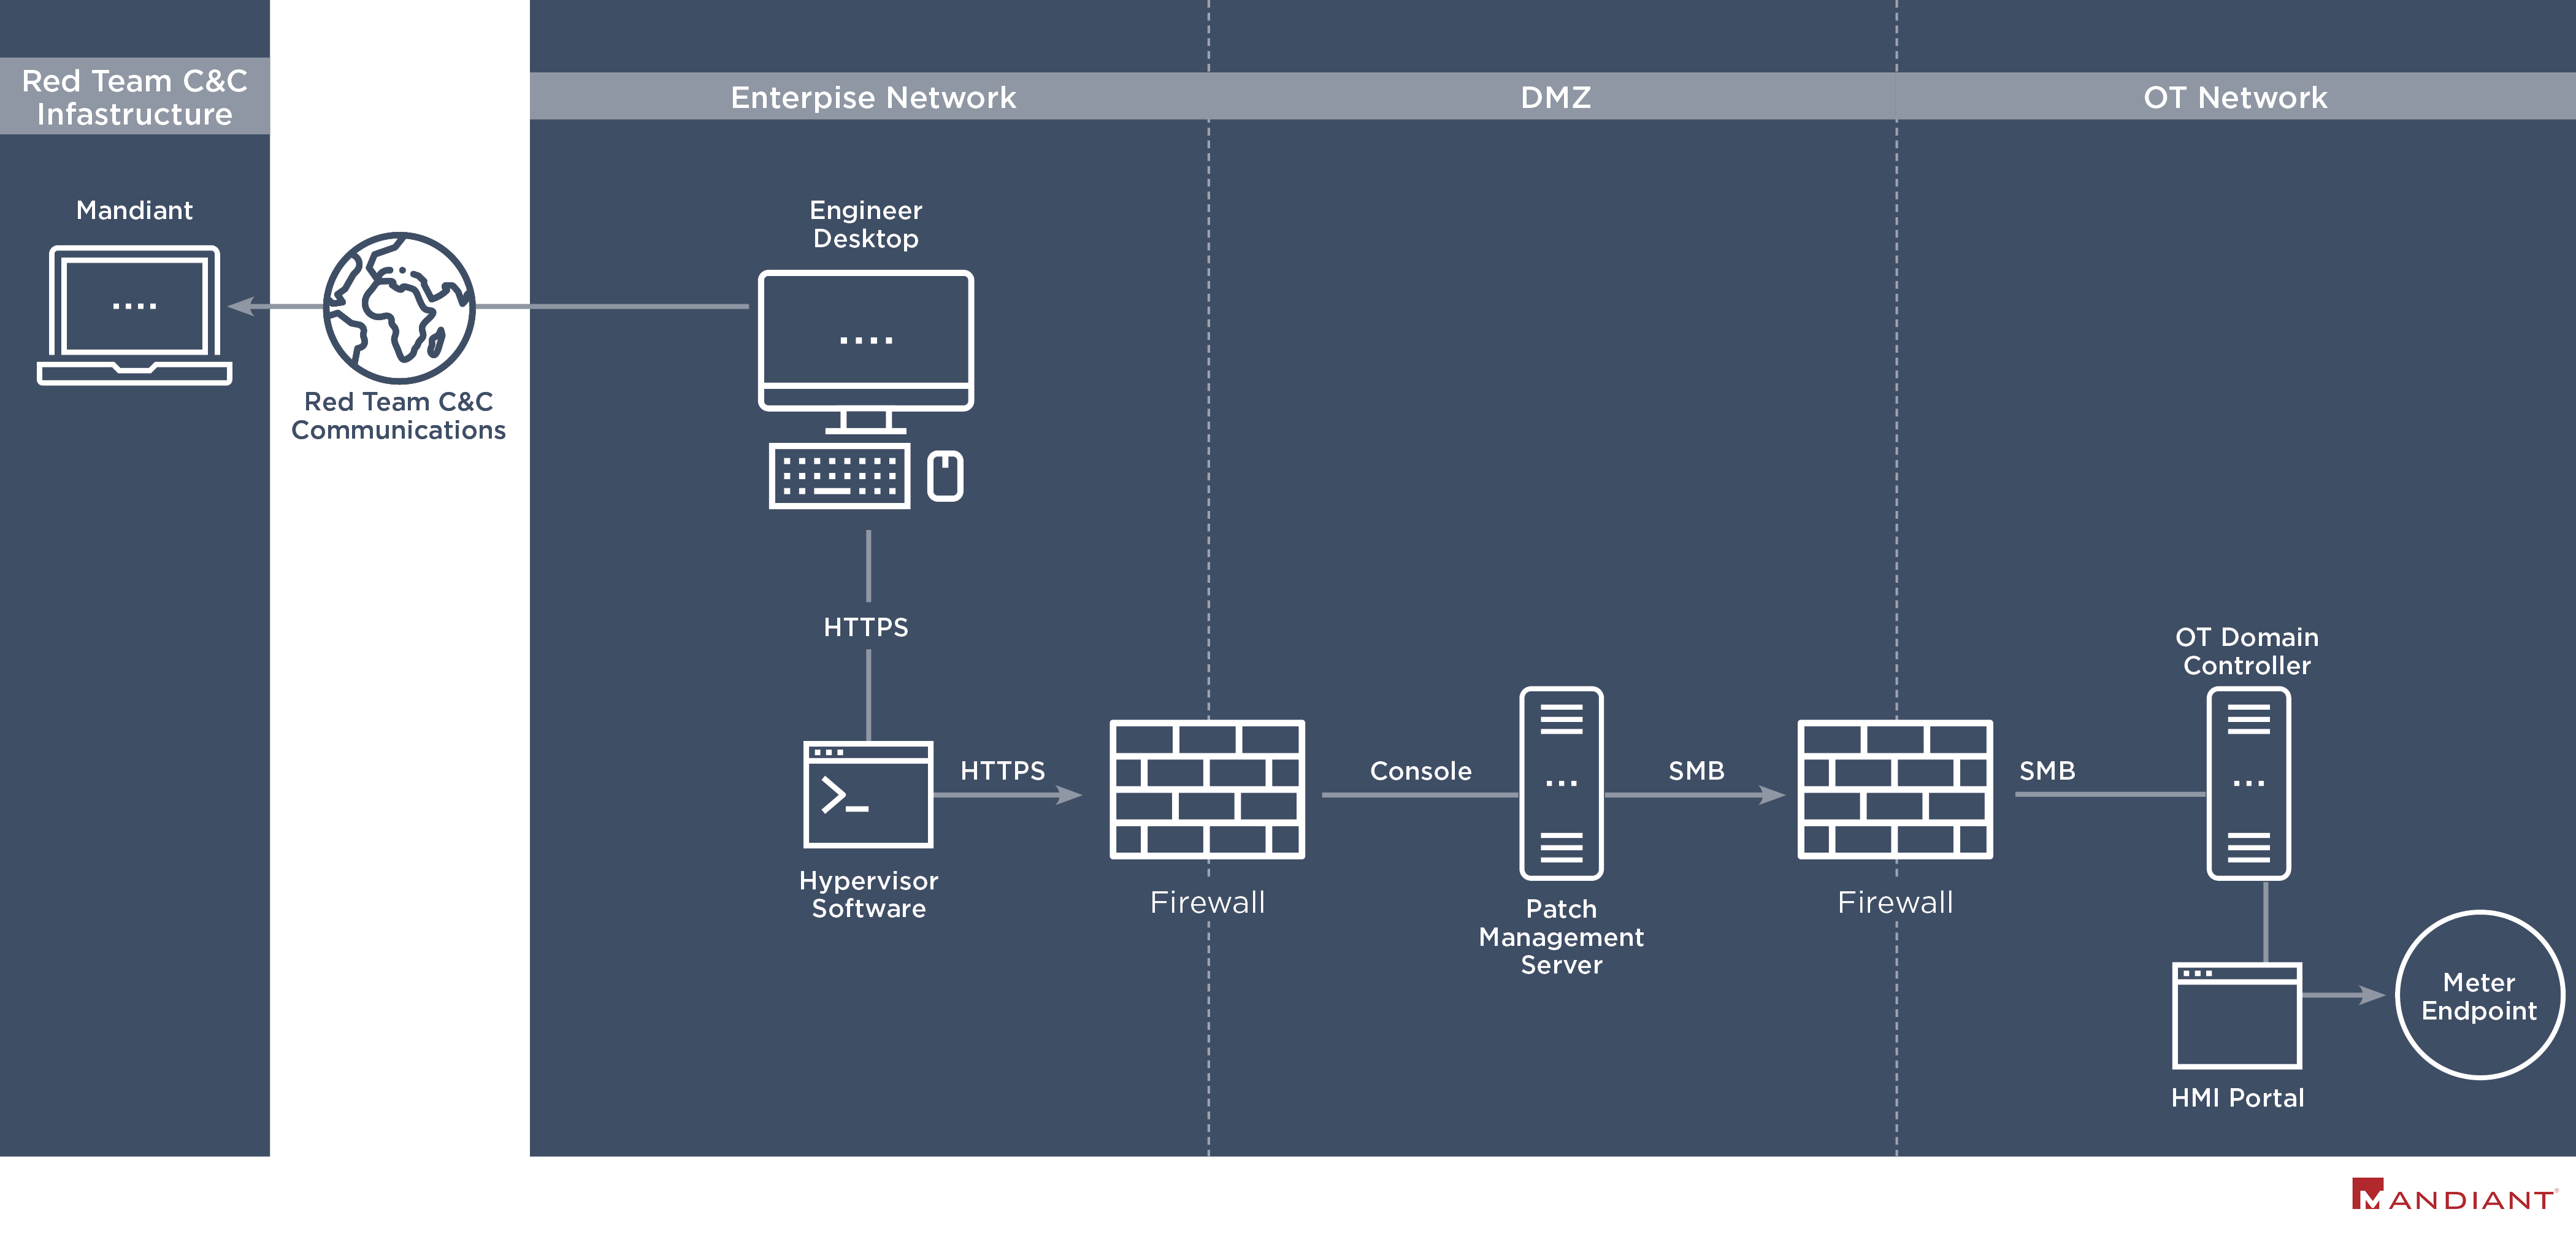 , Hacking Operational Technology for Defense: Lessons Learned From OT Red Teaming Smart Meter Control Infrastructure